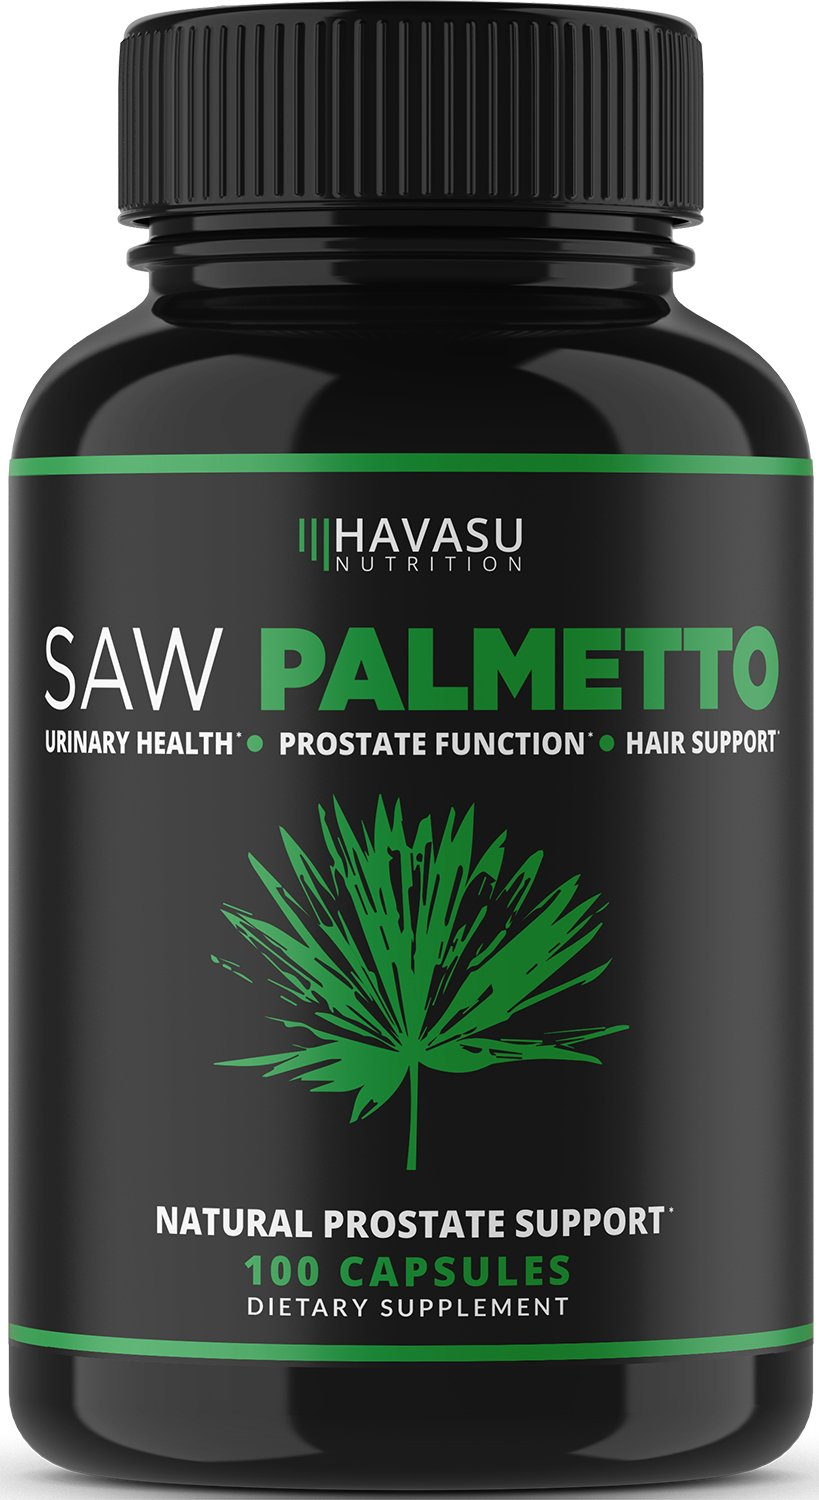 Extra Strength Saw Palmetto Supplement & Prostate Health - Prostate Support Formula to Reduce Frequent Urination and DHT Blocker to Prevent Hair Loss - Non GMO, GLUTEN FREE Prostate Supplement